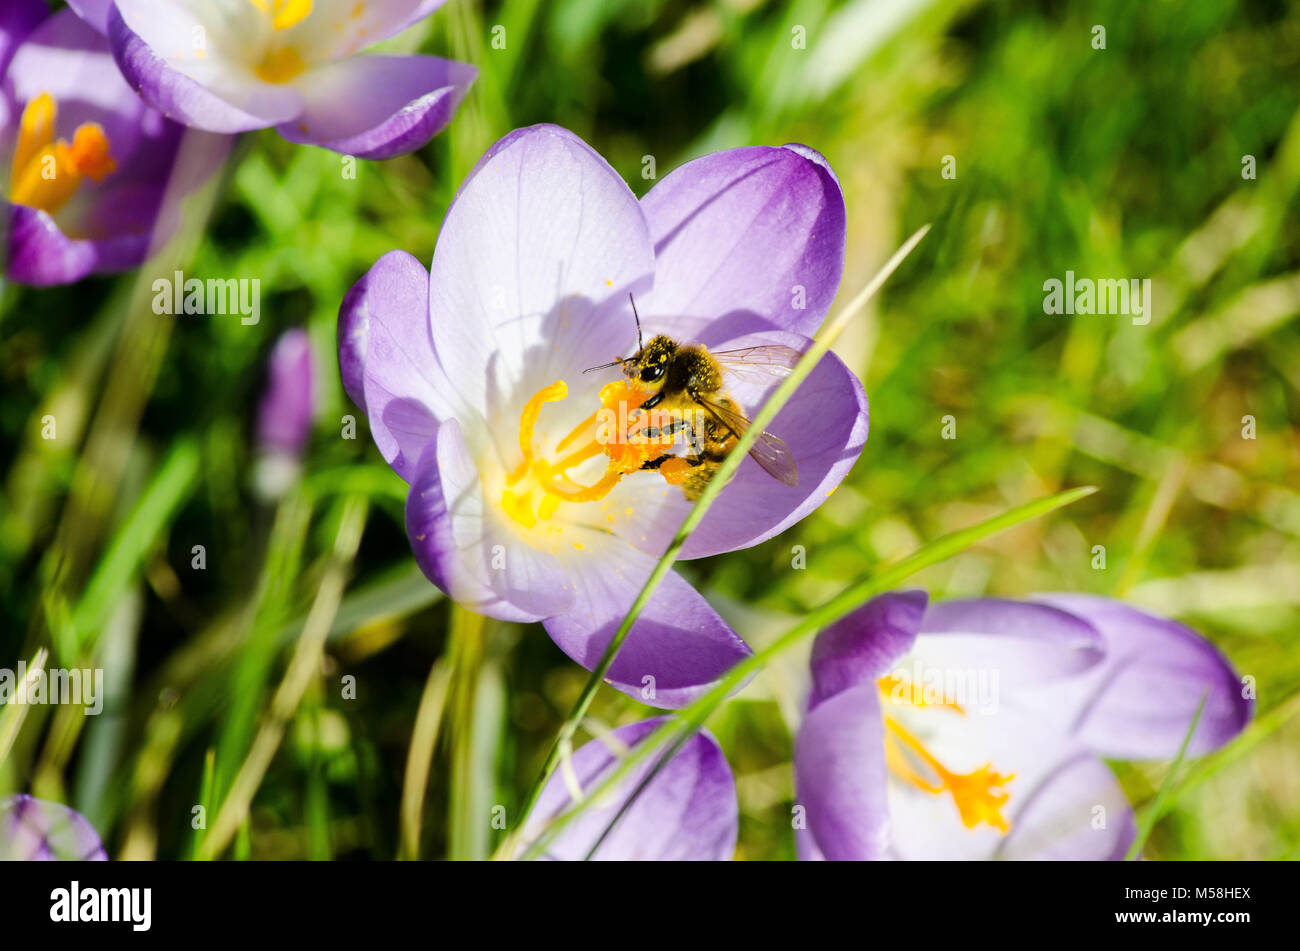 Beauty and the Bee. Close up of a Honey bee and some purple crocuses. - Stock Image